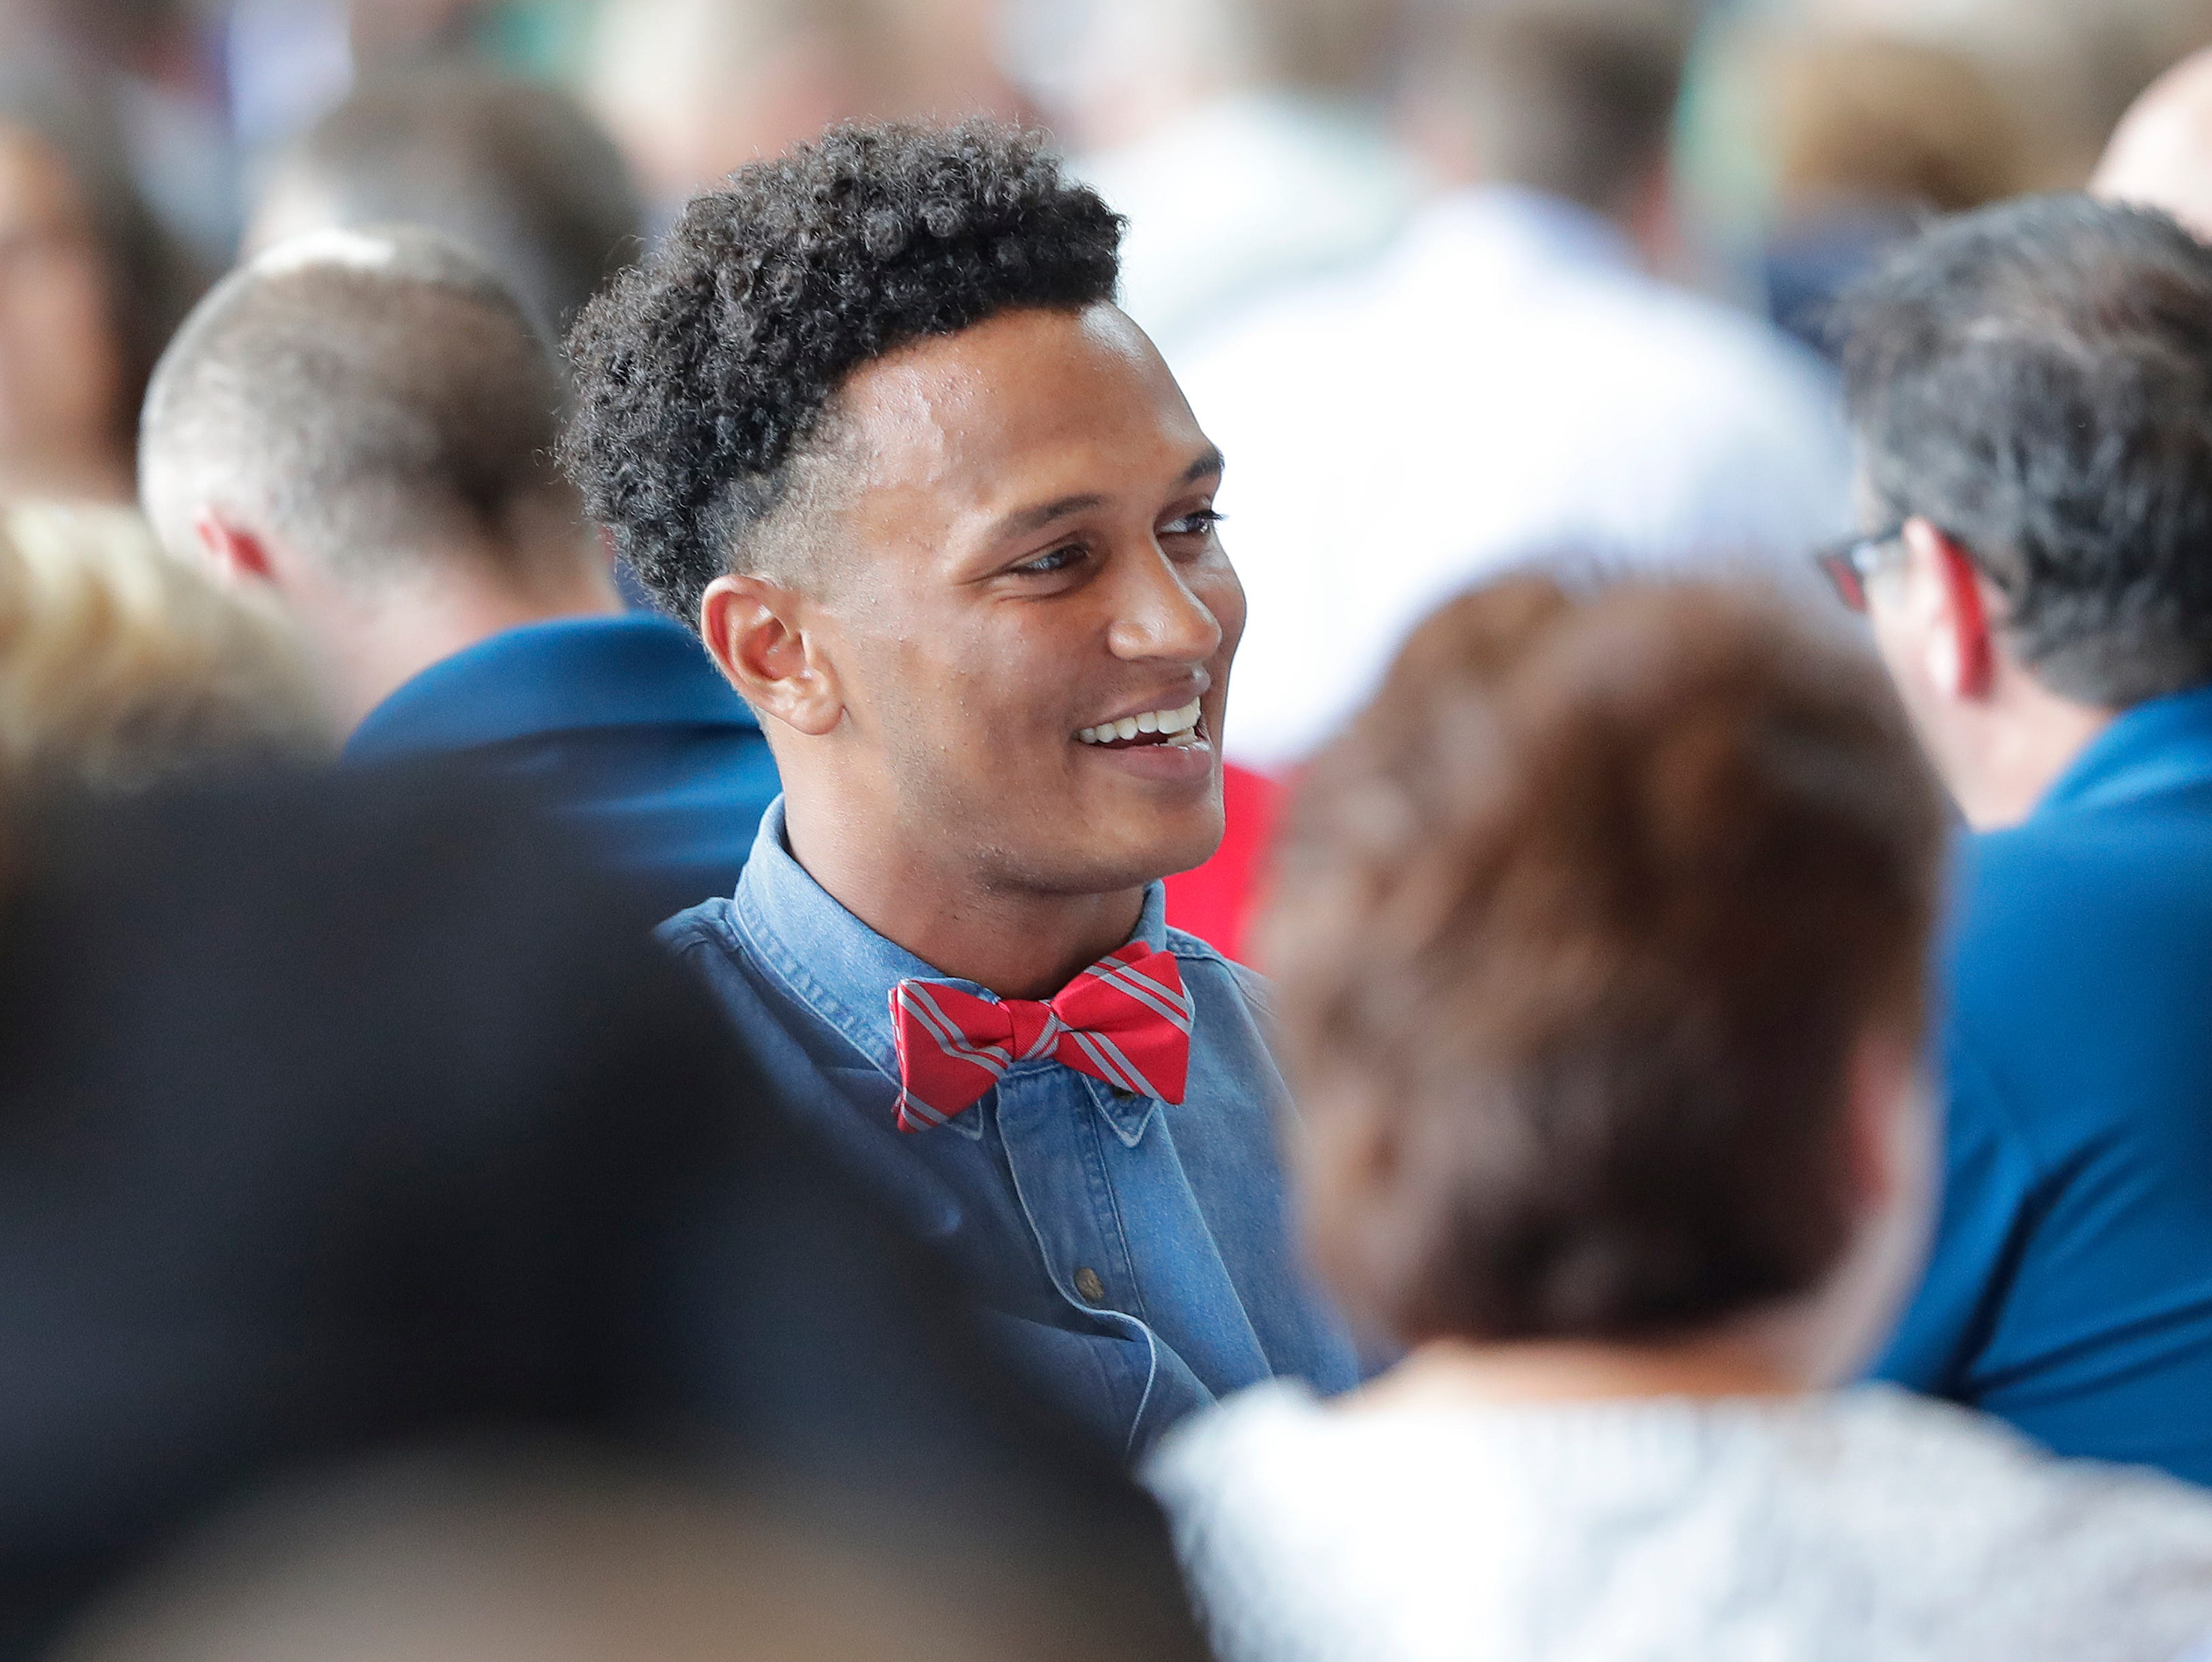 Green Bay Packers quarterback DeShone Kizer (9) during the Green Bay Chamber of Commerce Welcome Back Packers Luncheon at Lambeau Field Wednesday, August 29, 2018 in Green Bay, Wis.